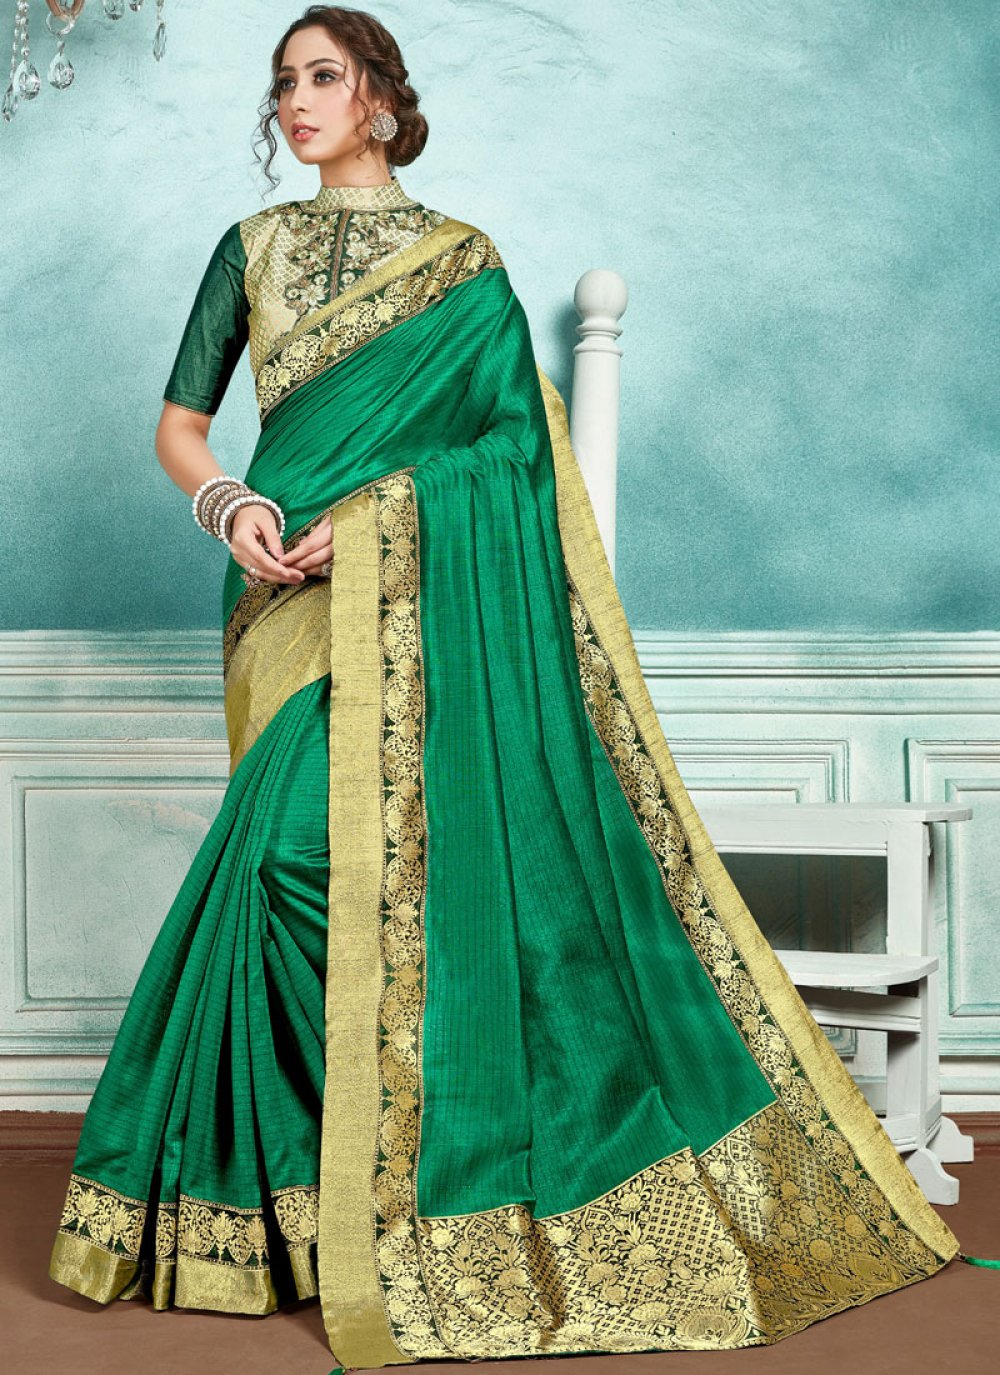 Designer Saree Border Jute Silk in Green